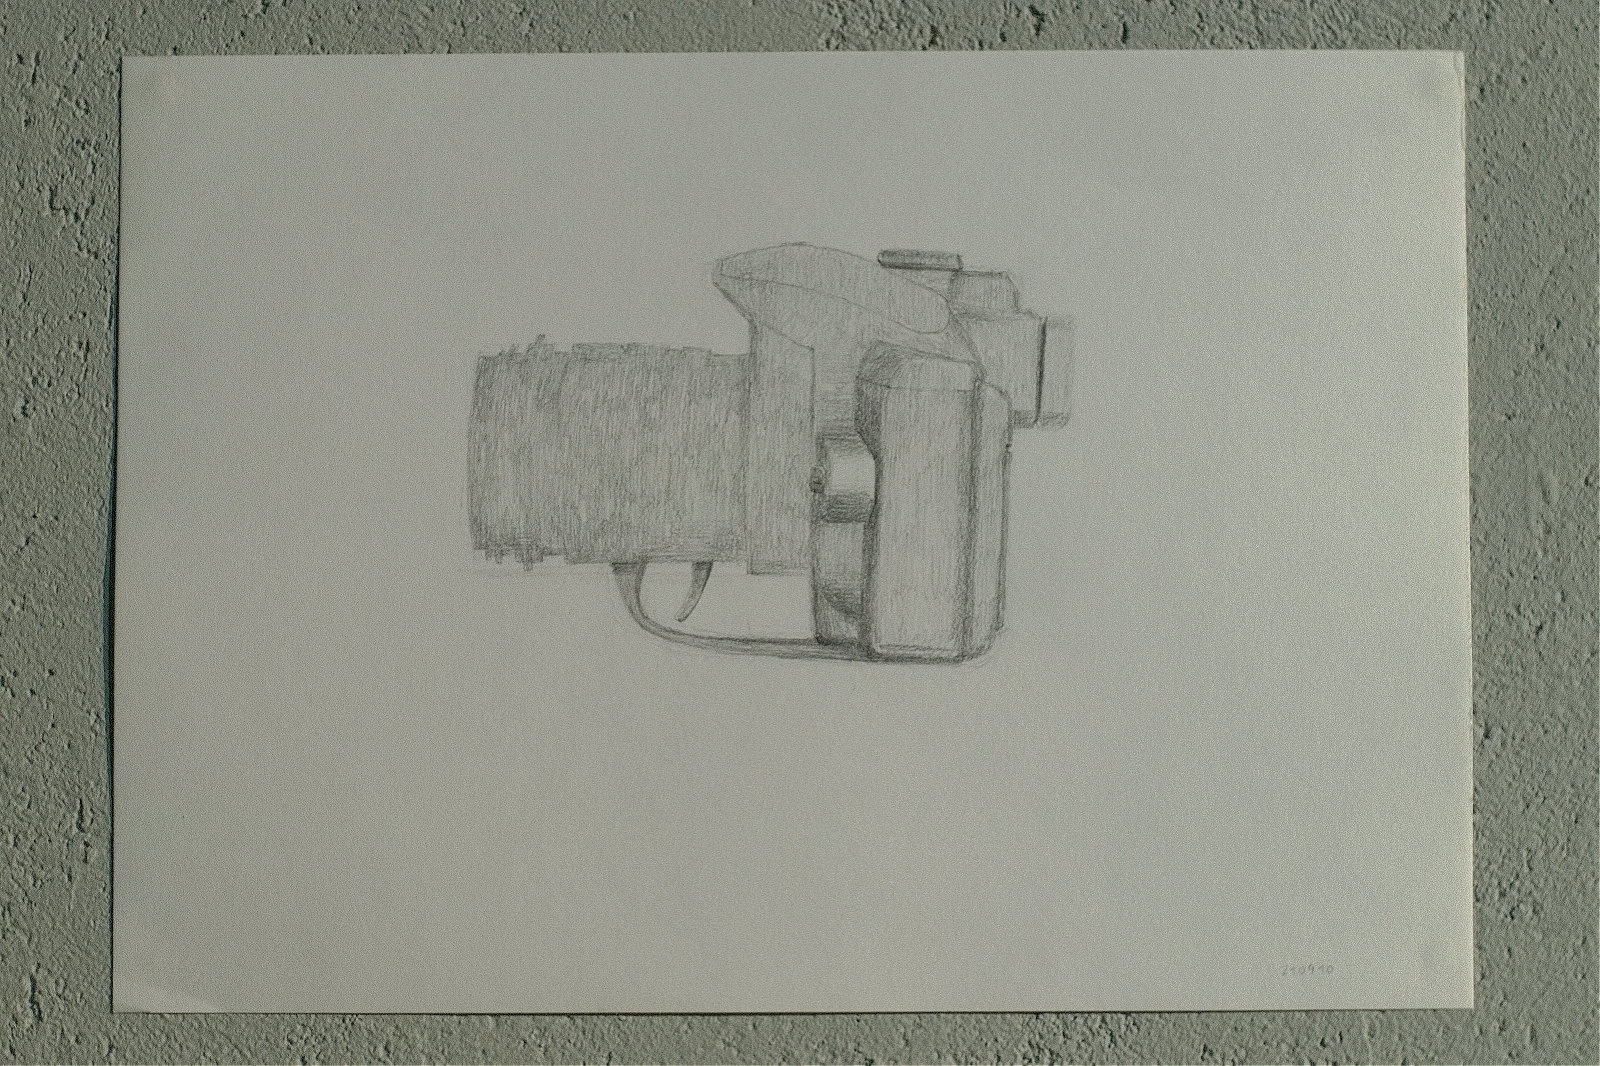 """""""Tourist´s weapon"""", 2010, charcoal on paper, 32 x 24 cm"""